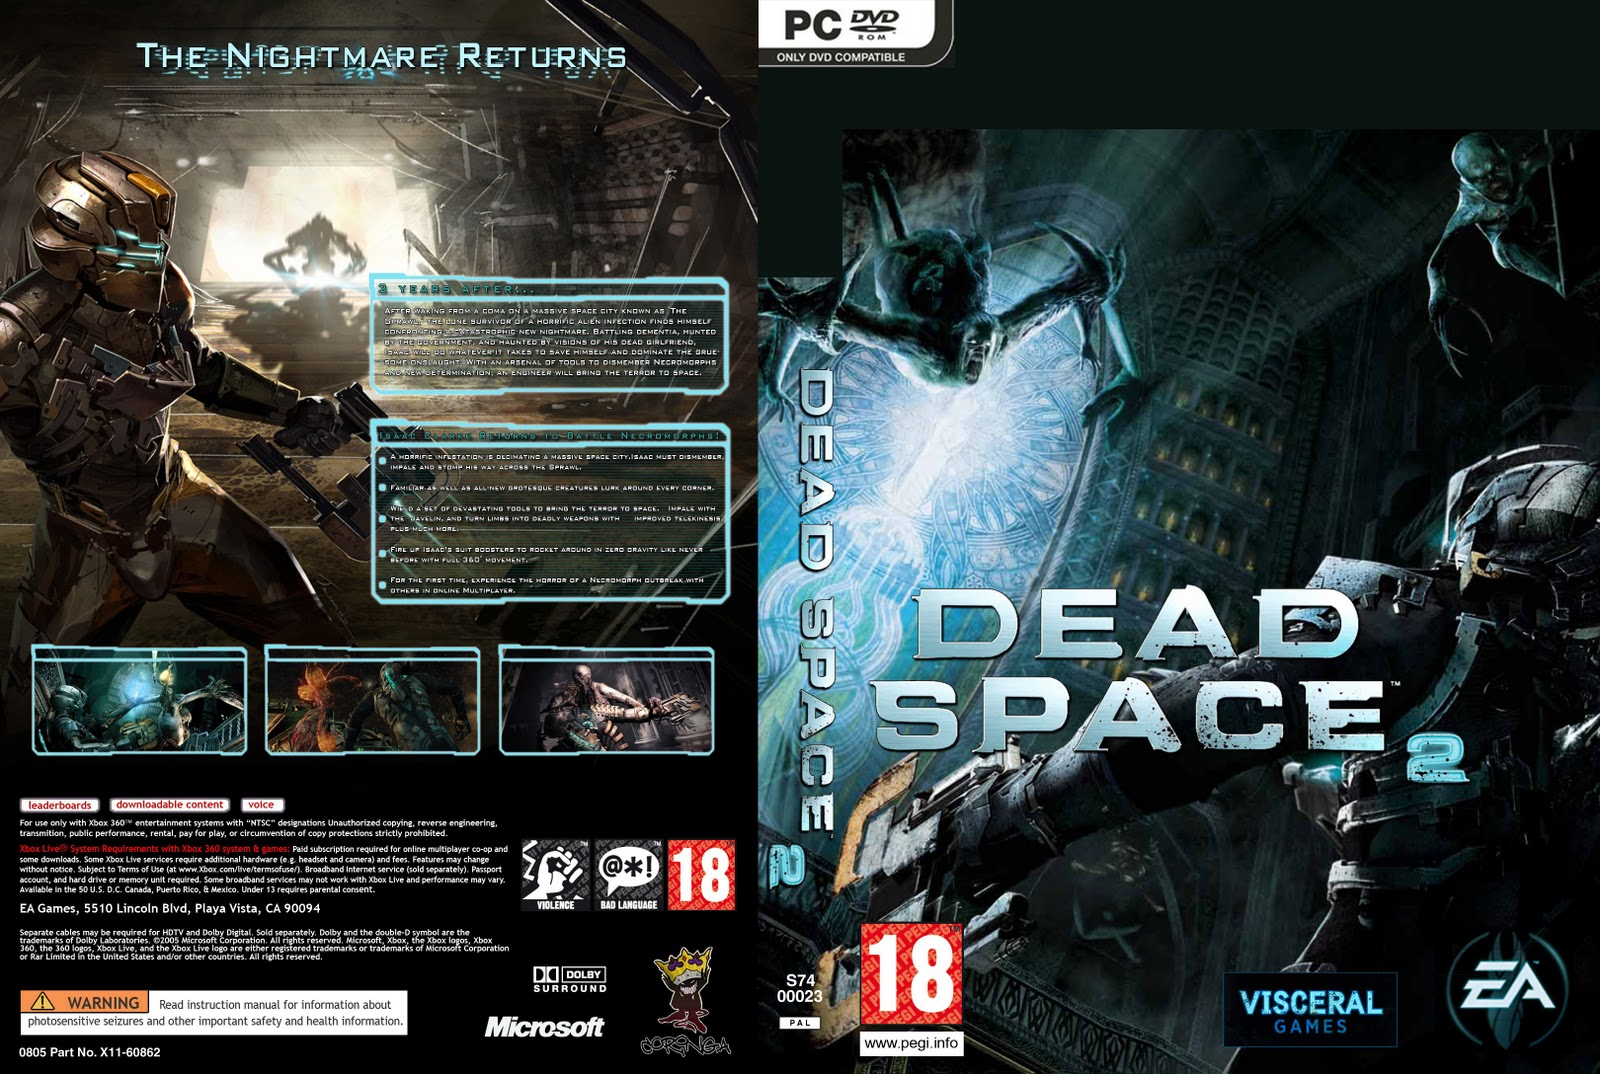 Dead Space 1 \ 2 PC בלינק 1 מהיר Dead_space_2_2011_pc_custom_dvd-front